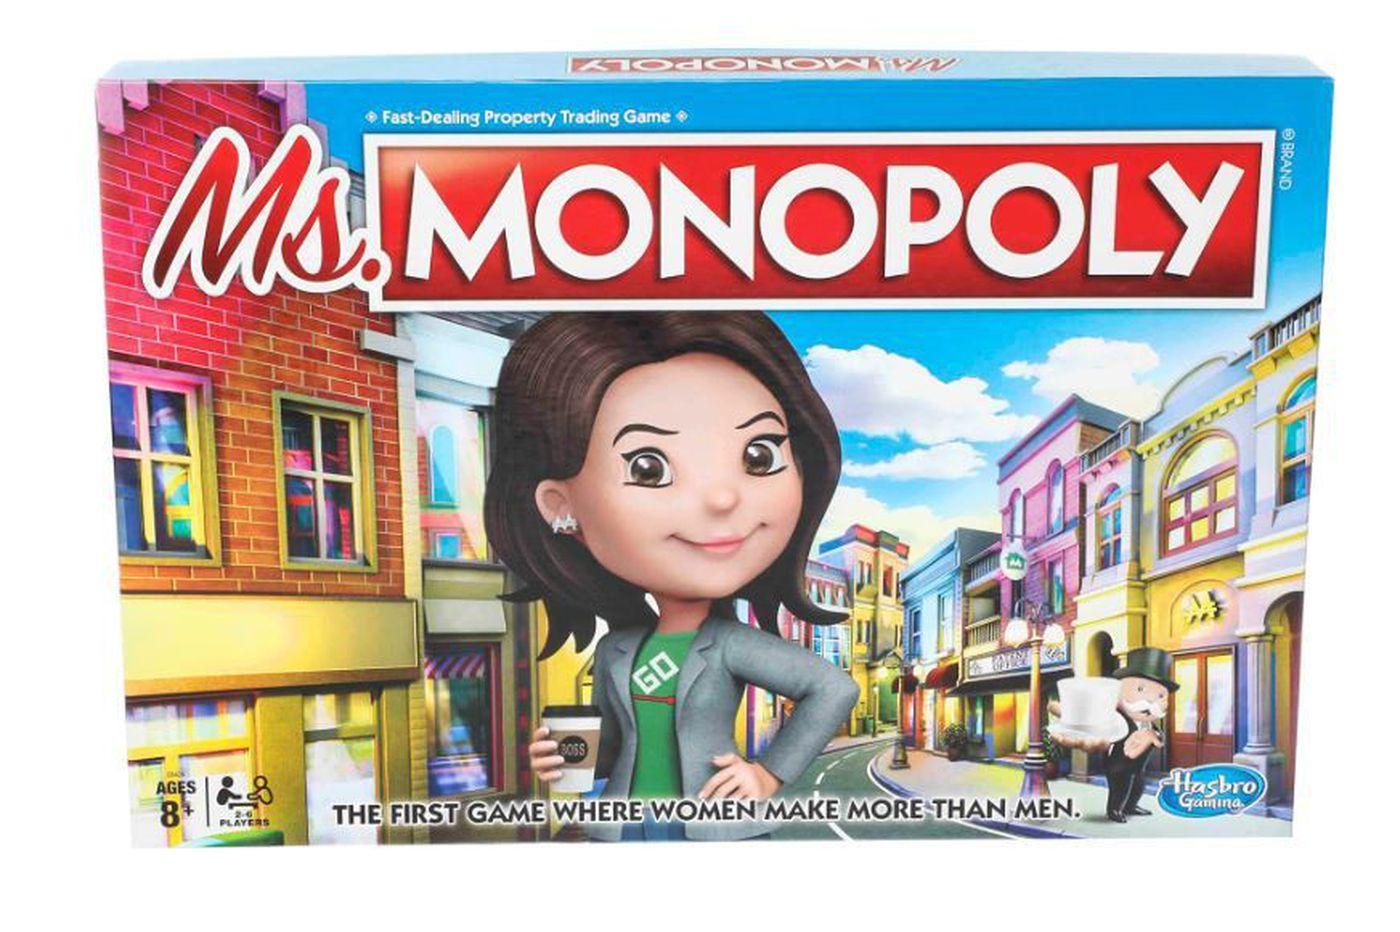 'Ms. Monopoly' celebrates female trailblazers, except the one who created Monopoly